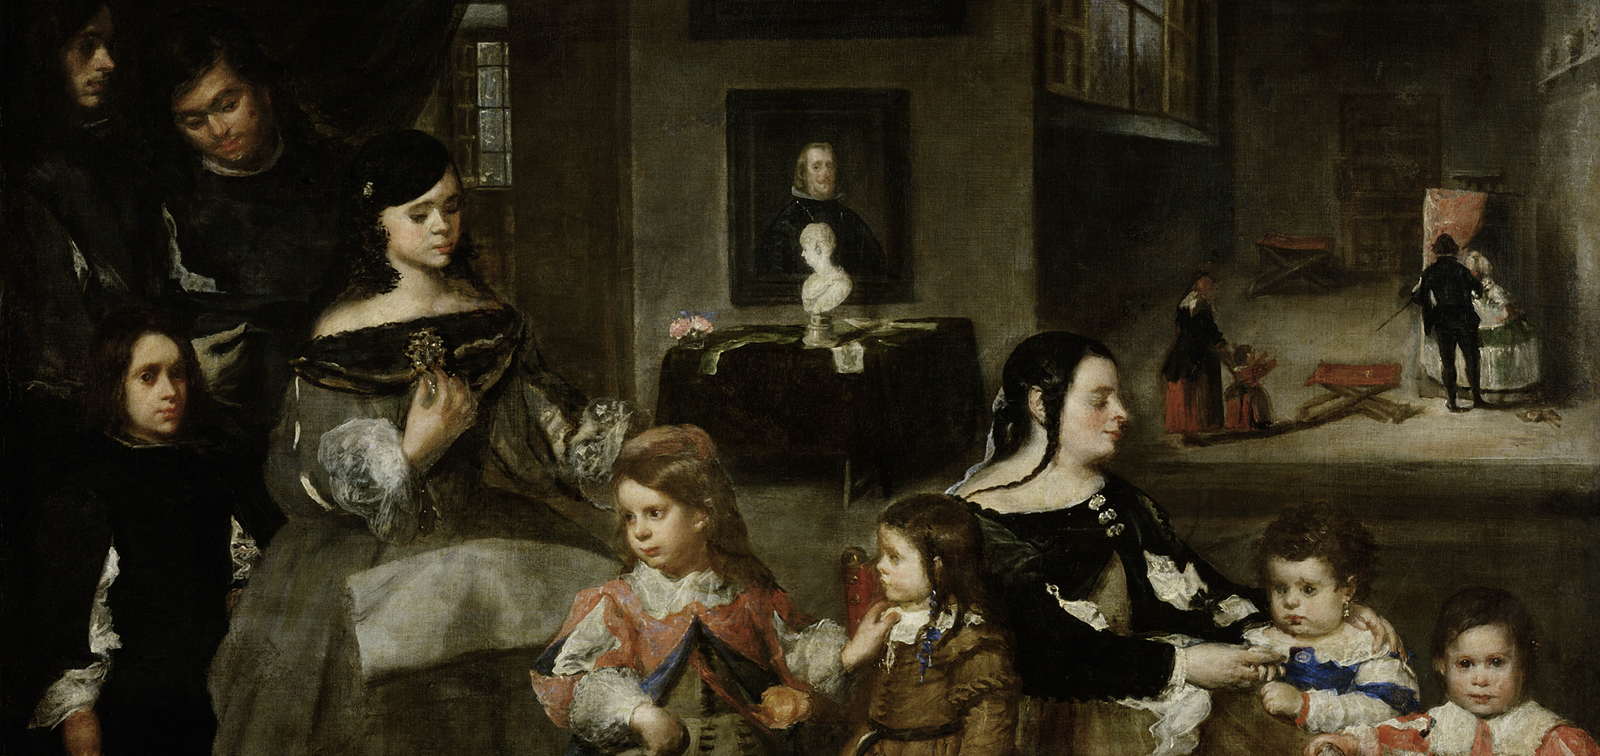 Velázquez and the Family of Philip IV